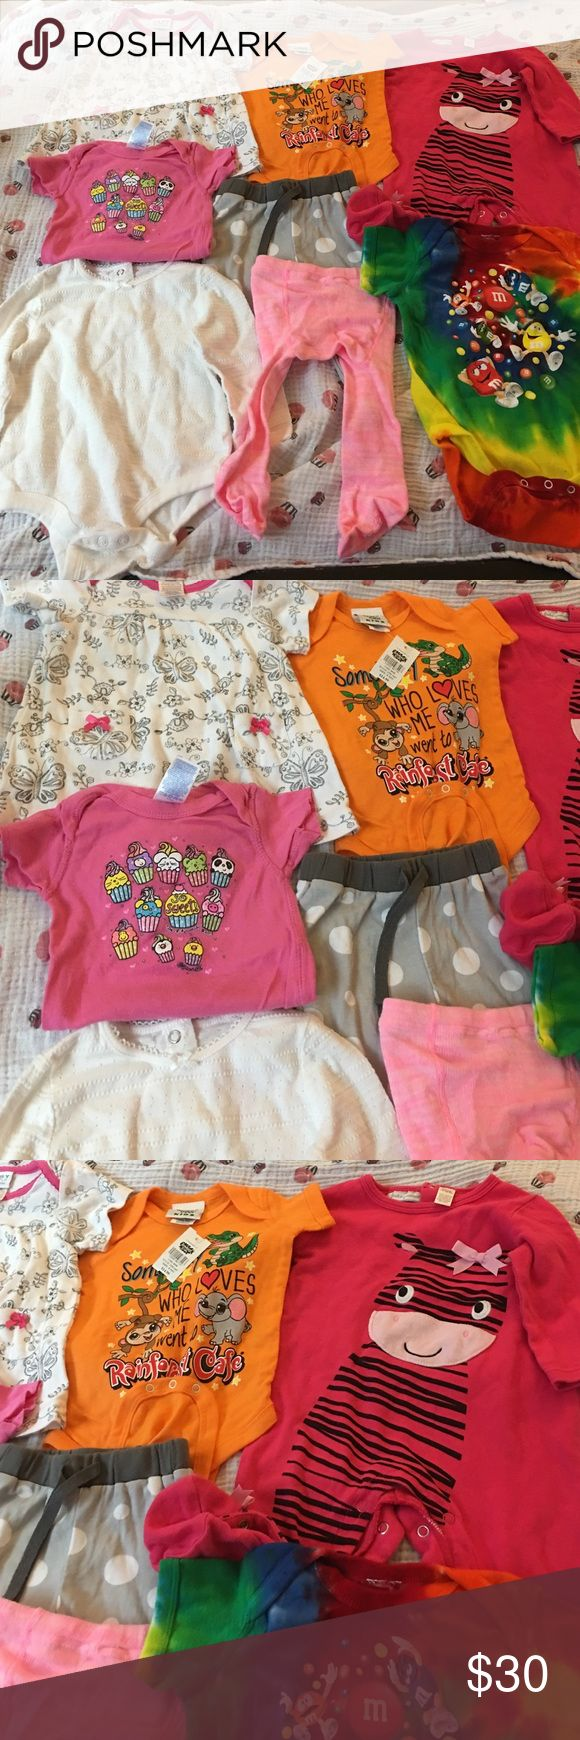 Baby 👶🏻 girl or boy clothes lot 6 months Lot of baby girl or boy clothes! 6 months! Can mix and match. 2 are new with tags and the rest are new just dry cleaned. New with tags items are the rainforest cafe and the m&m onesies. They retail for $15 and $17 each! Bought at the price! Matching Sets